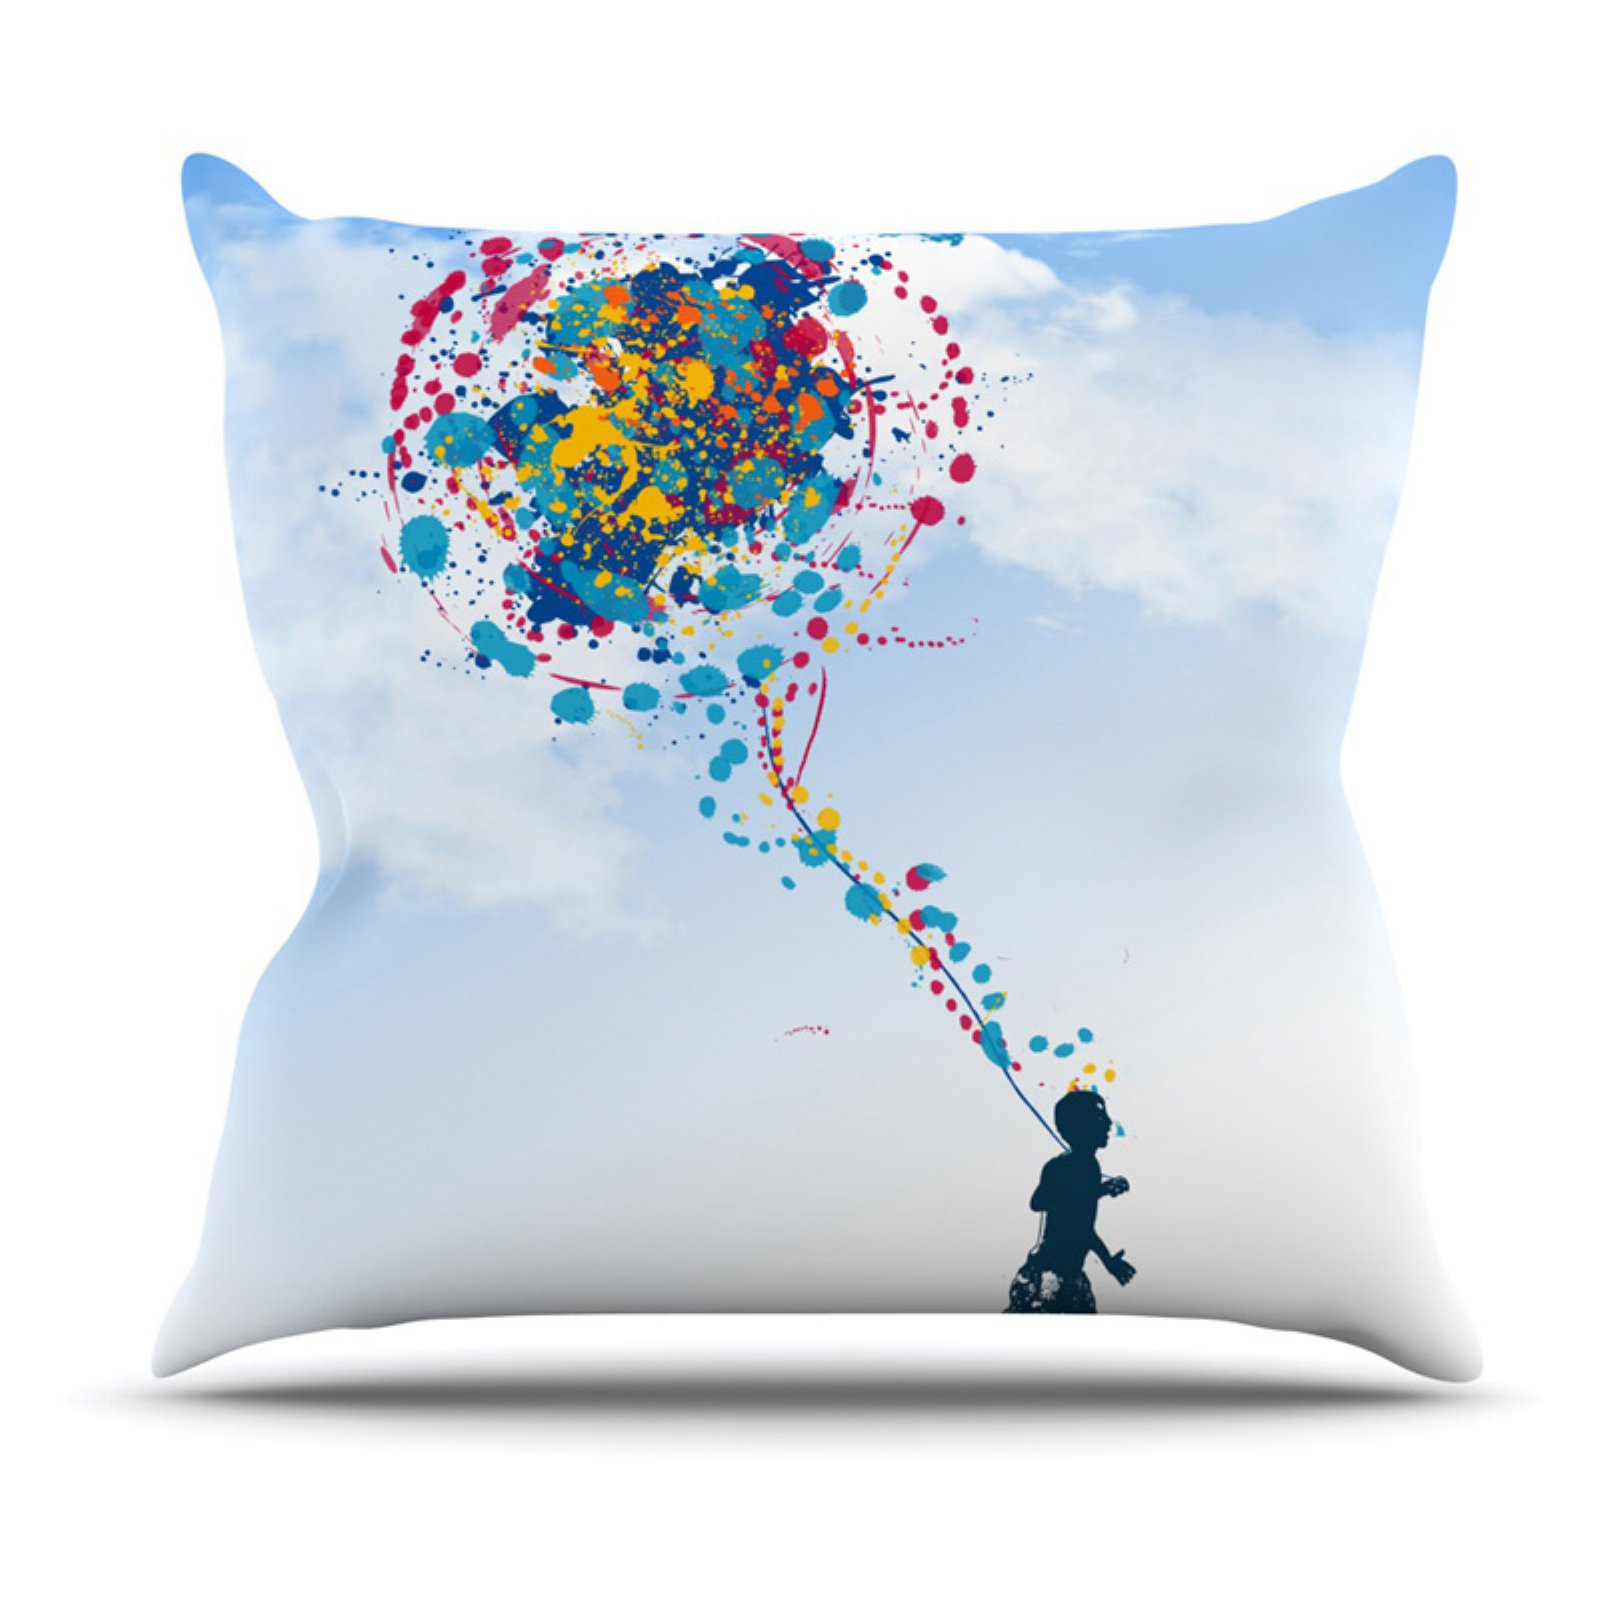 Kess InHouse Frederic LevyHadida Child Creation Chronicle Indoor/Outdoor Throw Pillow